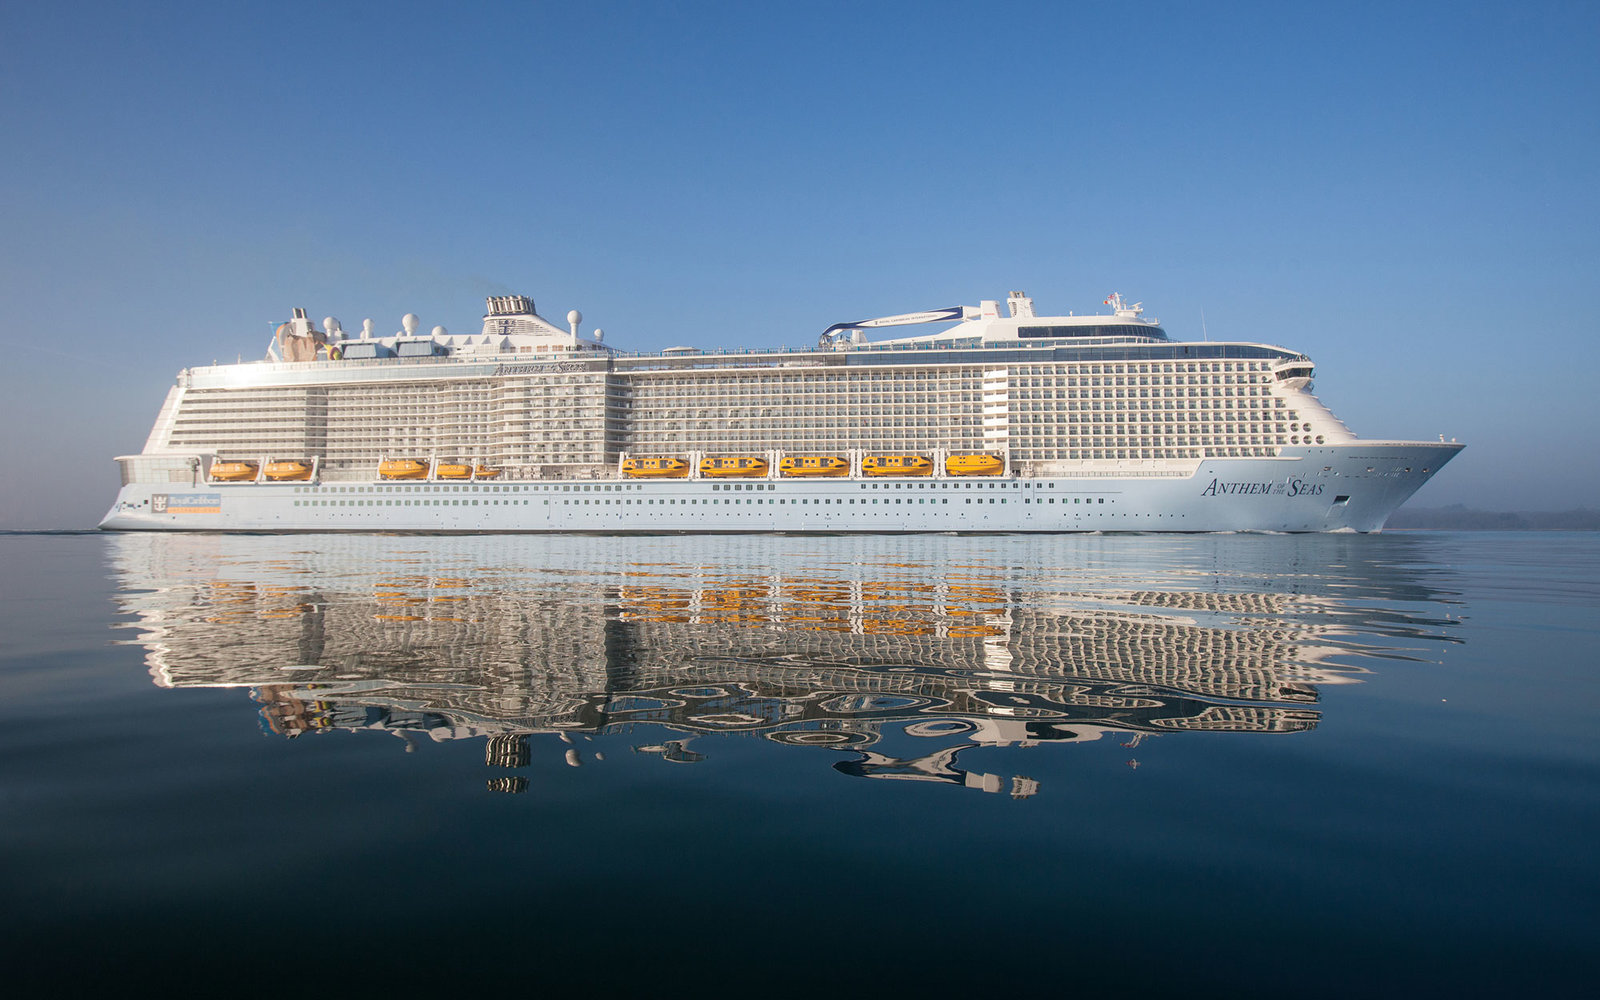 Royal Caribbean's newest and most technologically advanced ship Anthem of the Seas arrives in Southampton where she will be named on Tuesday. In addition to being served drinks by robot bartenders, guests will be able to drive dodgems, learn circus skil